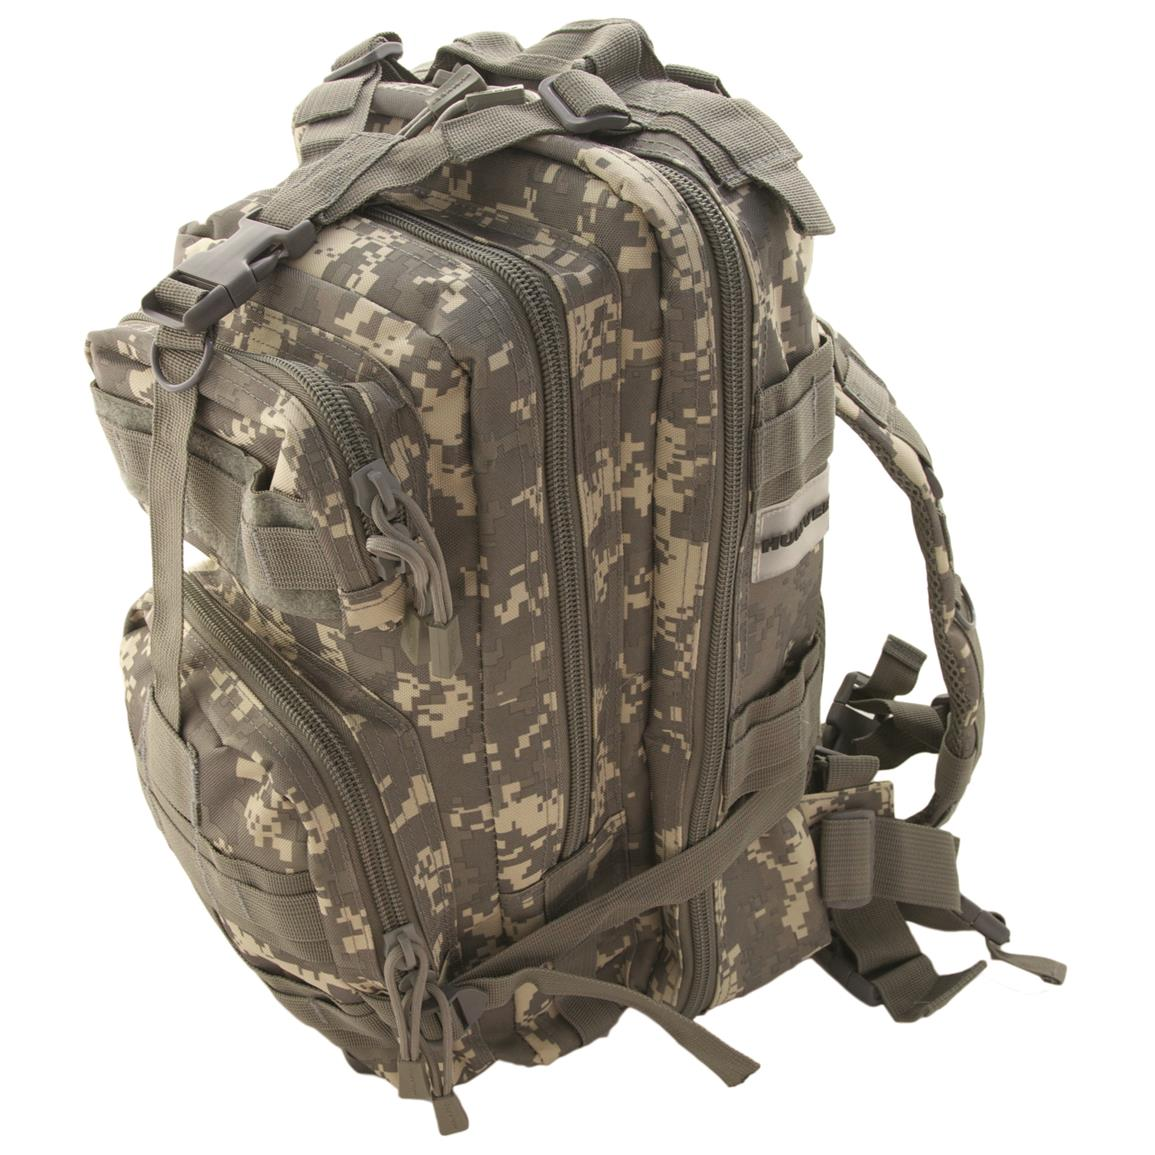 Humvee Transport Gear Bag, Digital Camo, Side